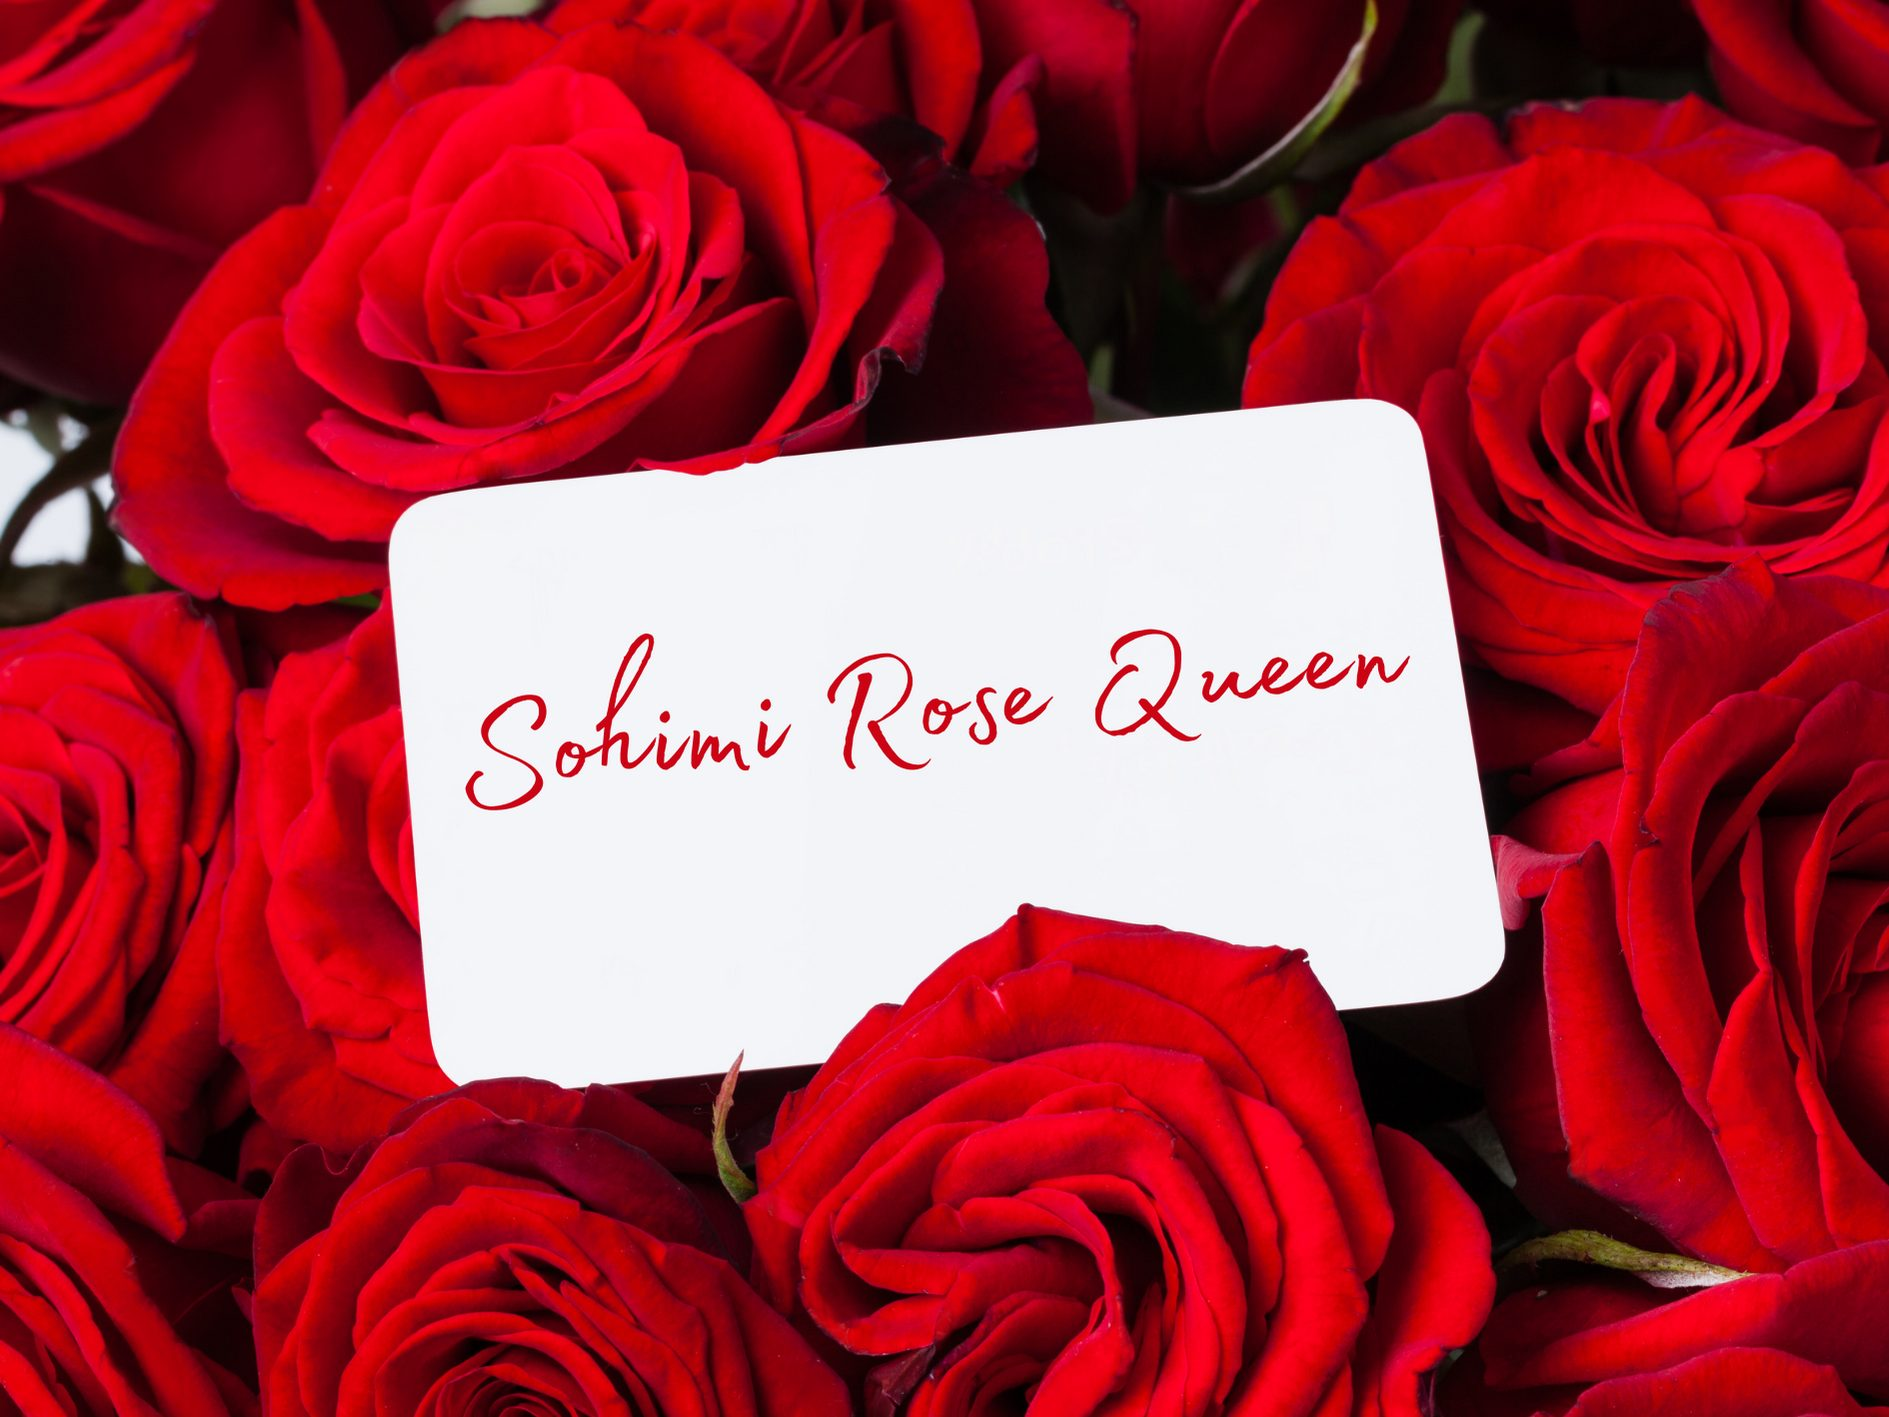 [Toy Review] Sohimi Rose Queen